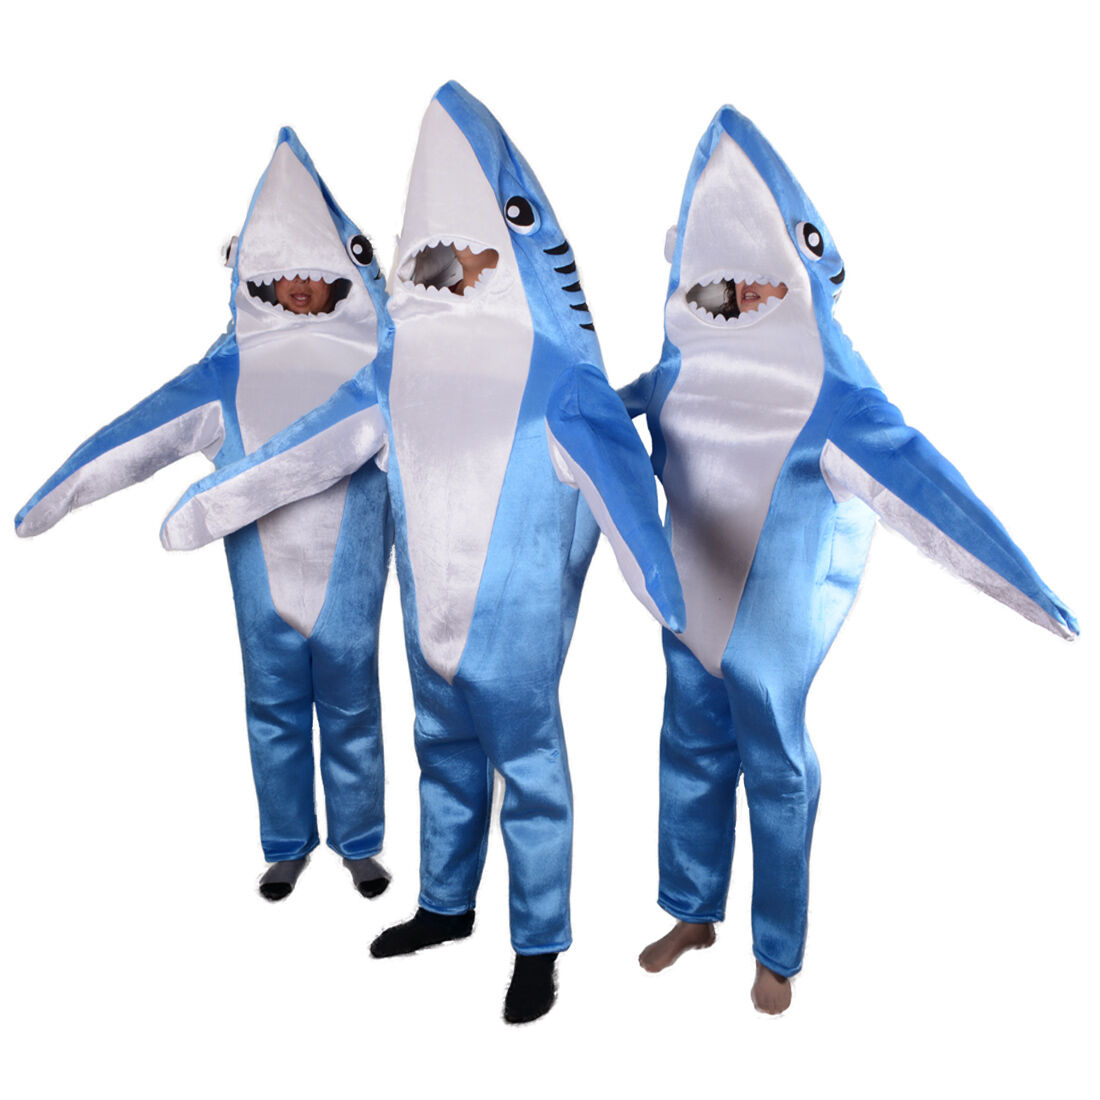 Adult Shark Halloween Costumes Mascot Animal Party Cosplay Outfit Blue Sponge